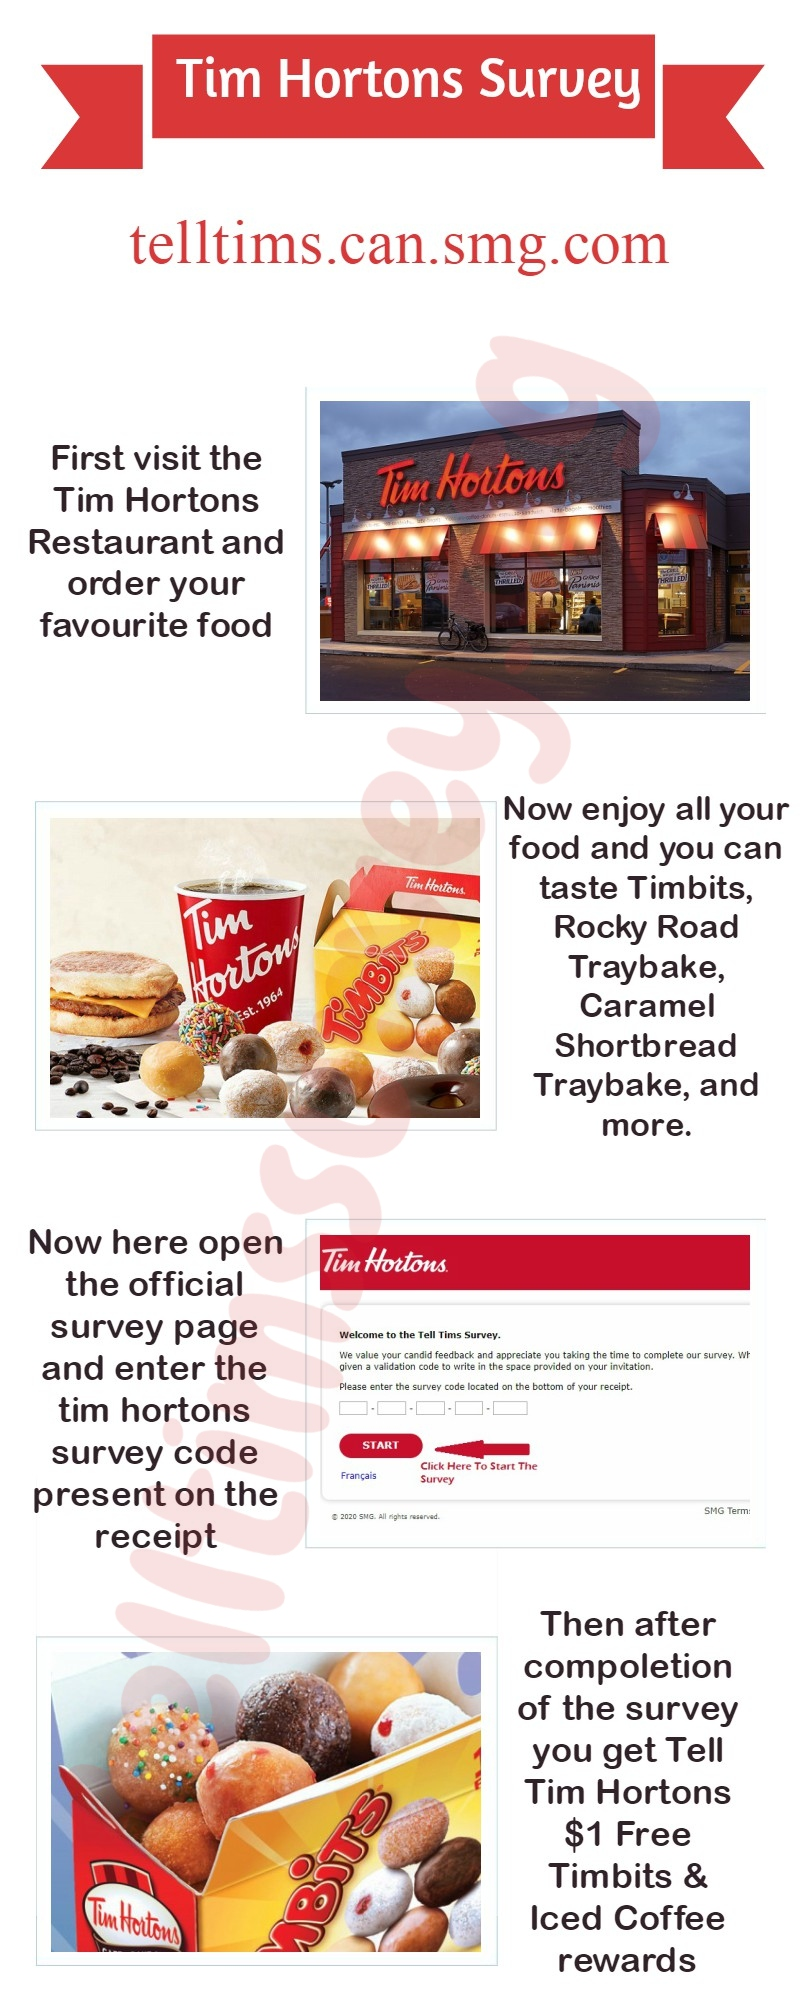 Tell Tim Hortons Survey Guide